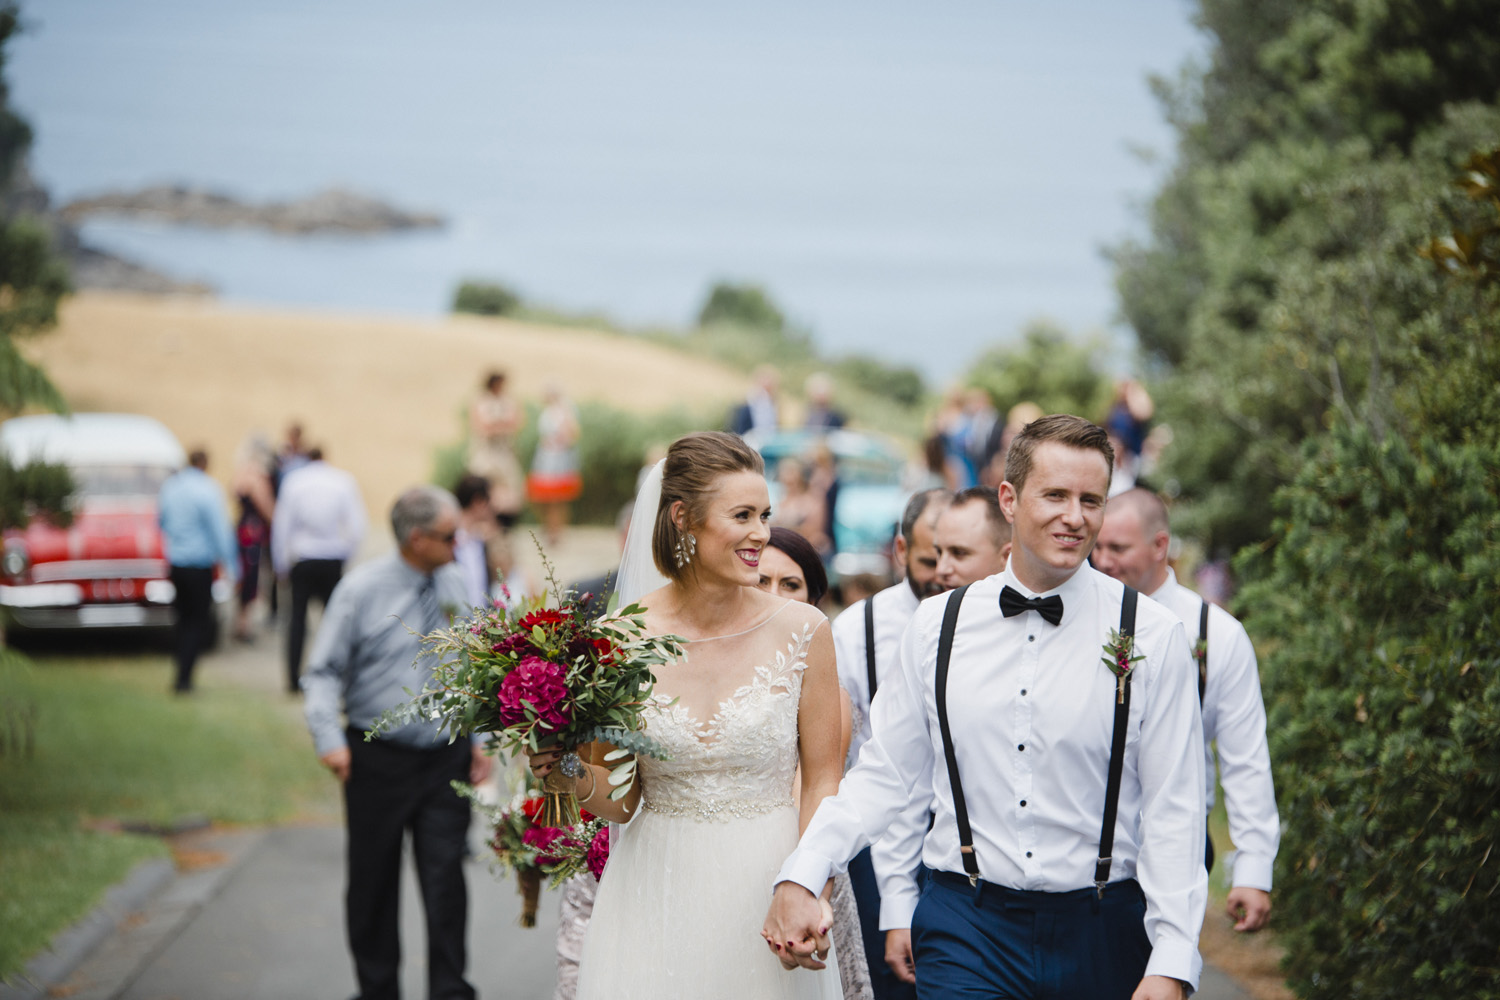 Coromandel wedding venue, Leadfoot Ranch